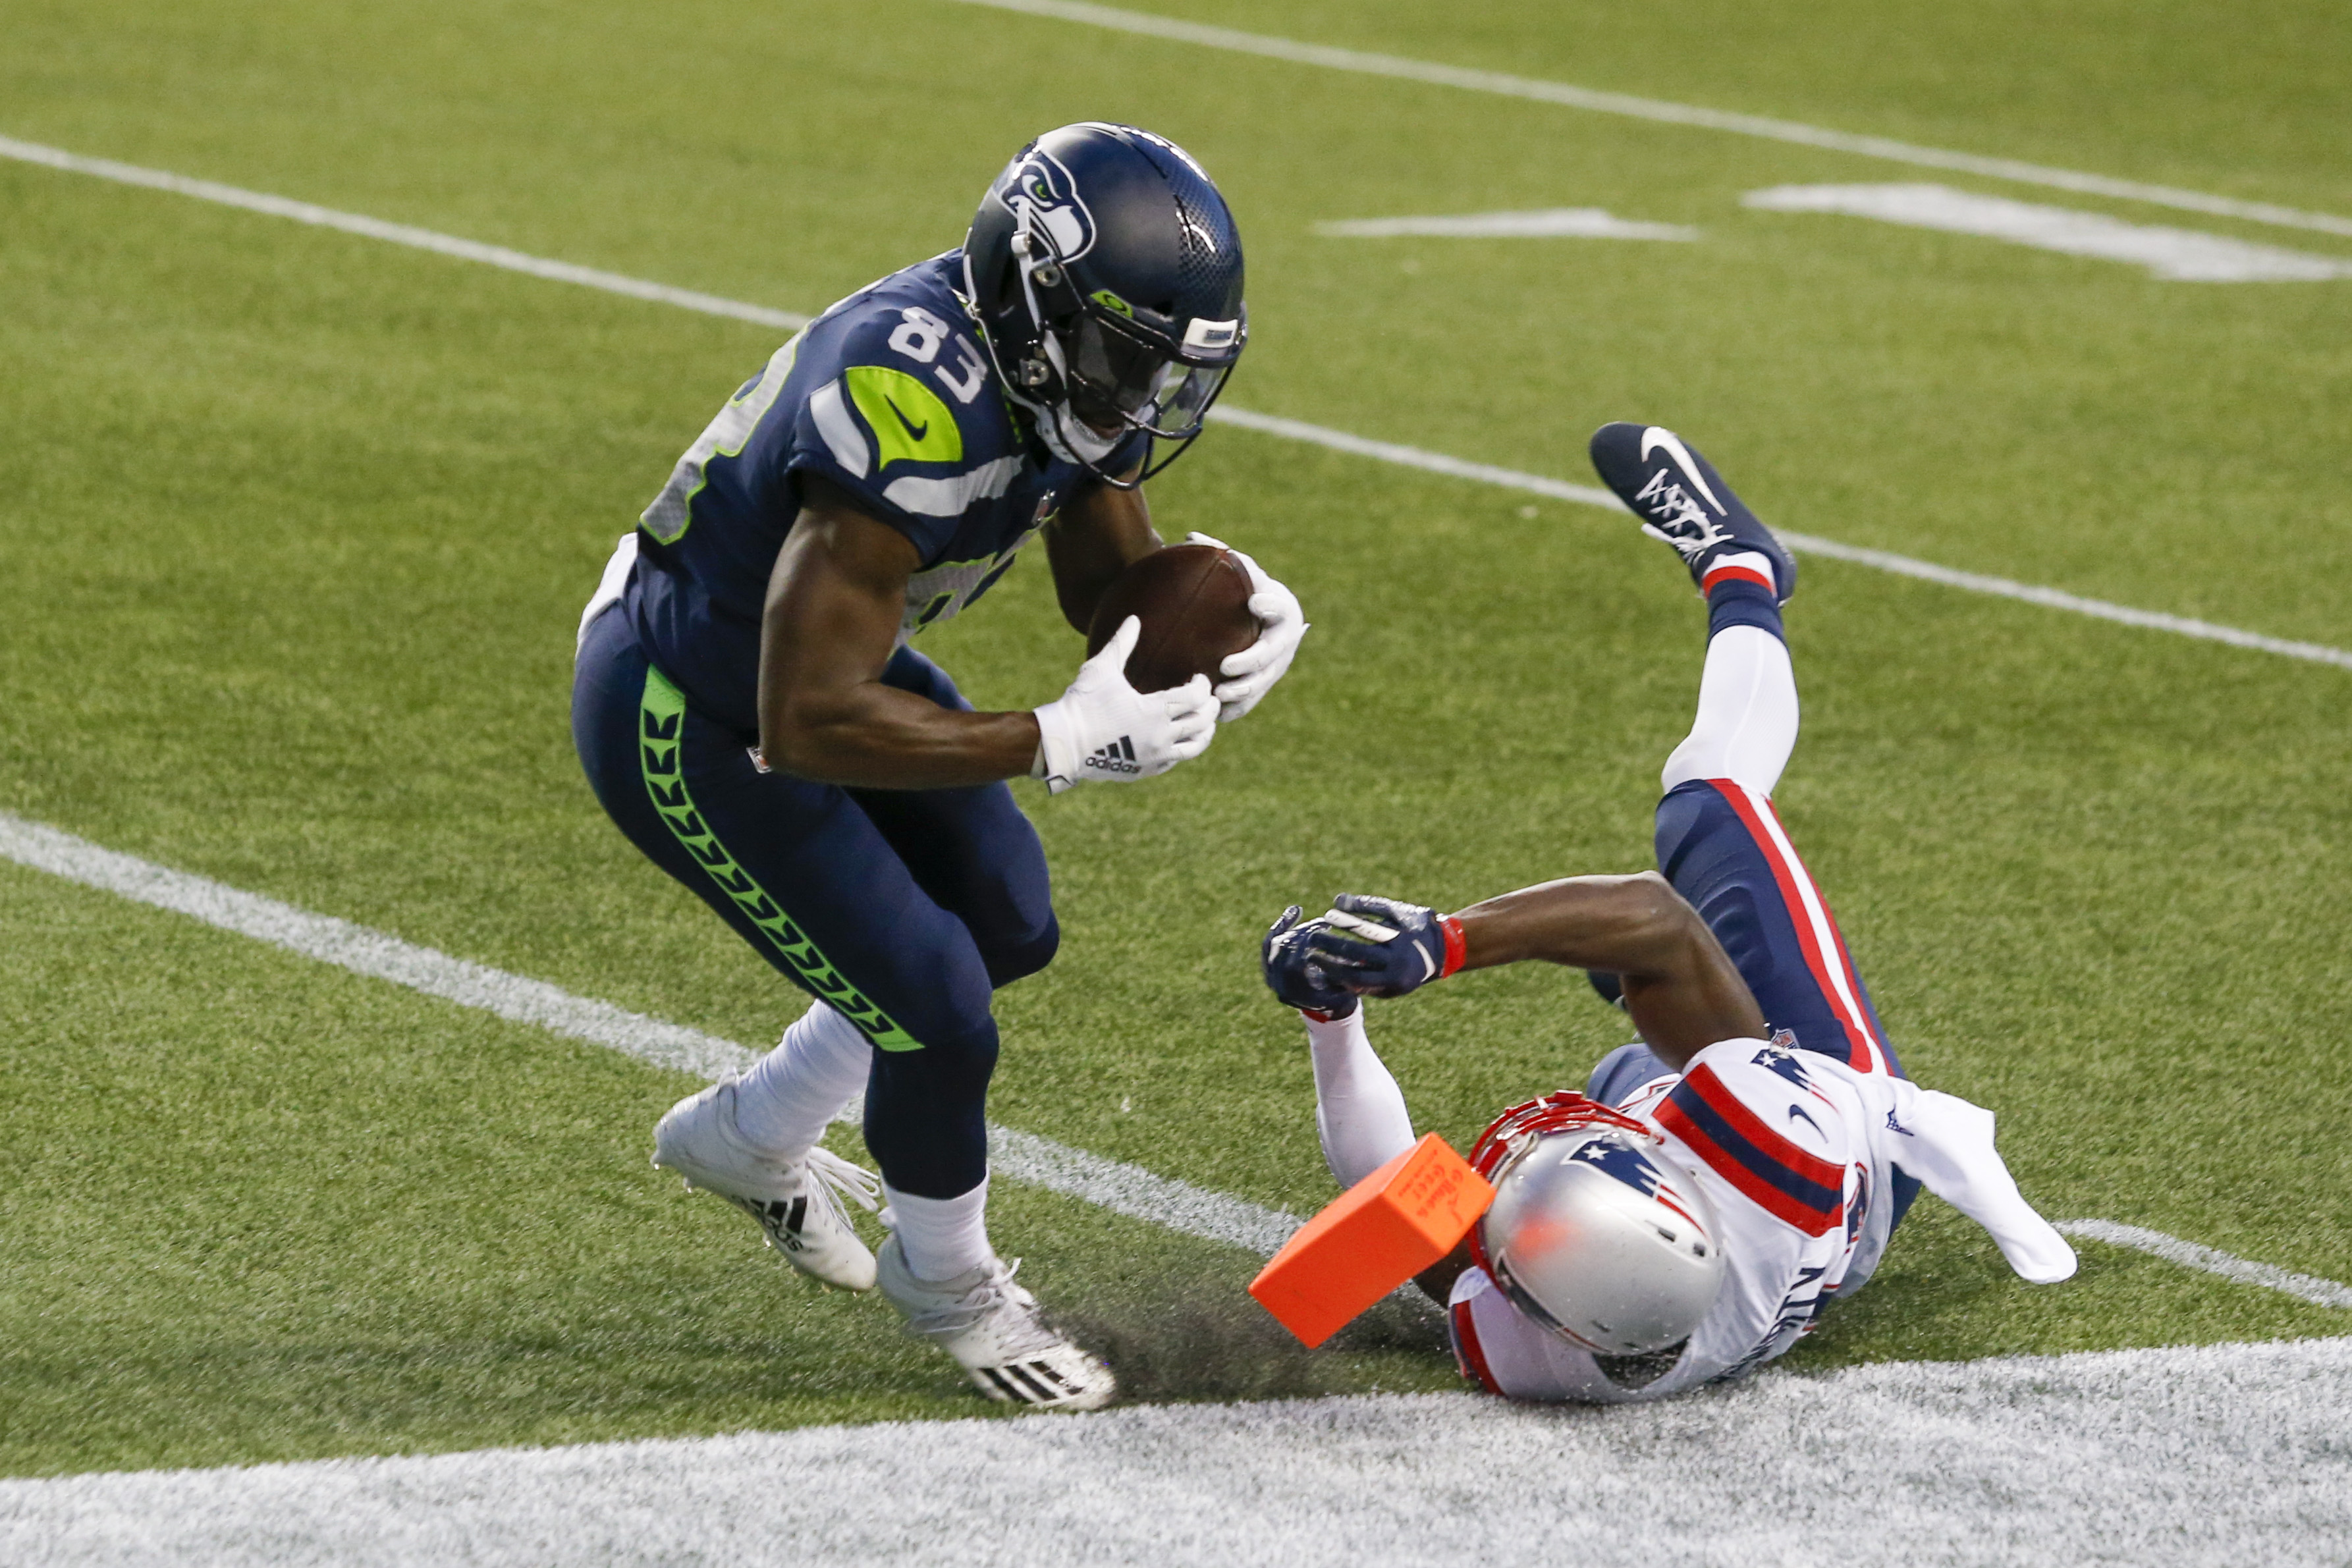 NFL: New England Patriots at Seattle Seahawks